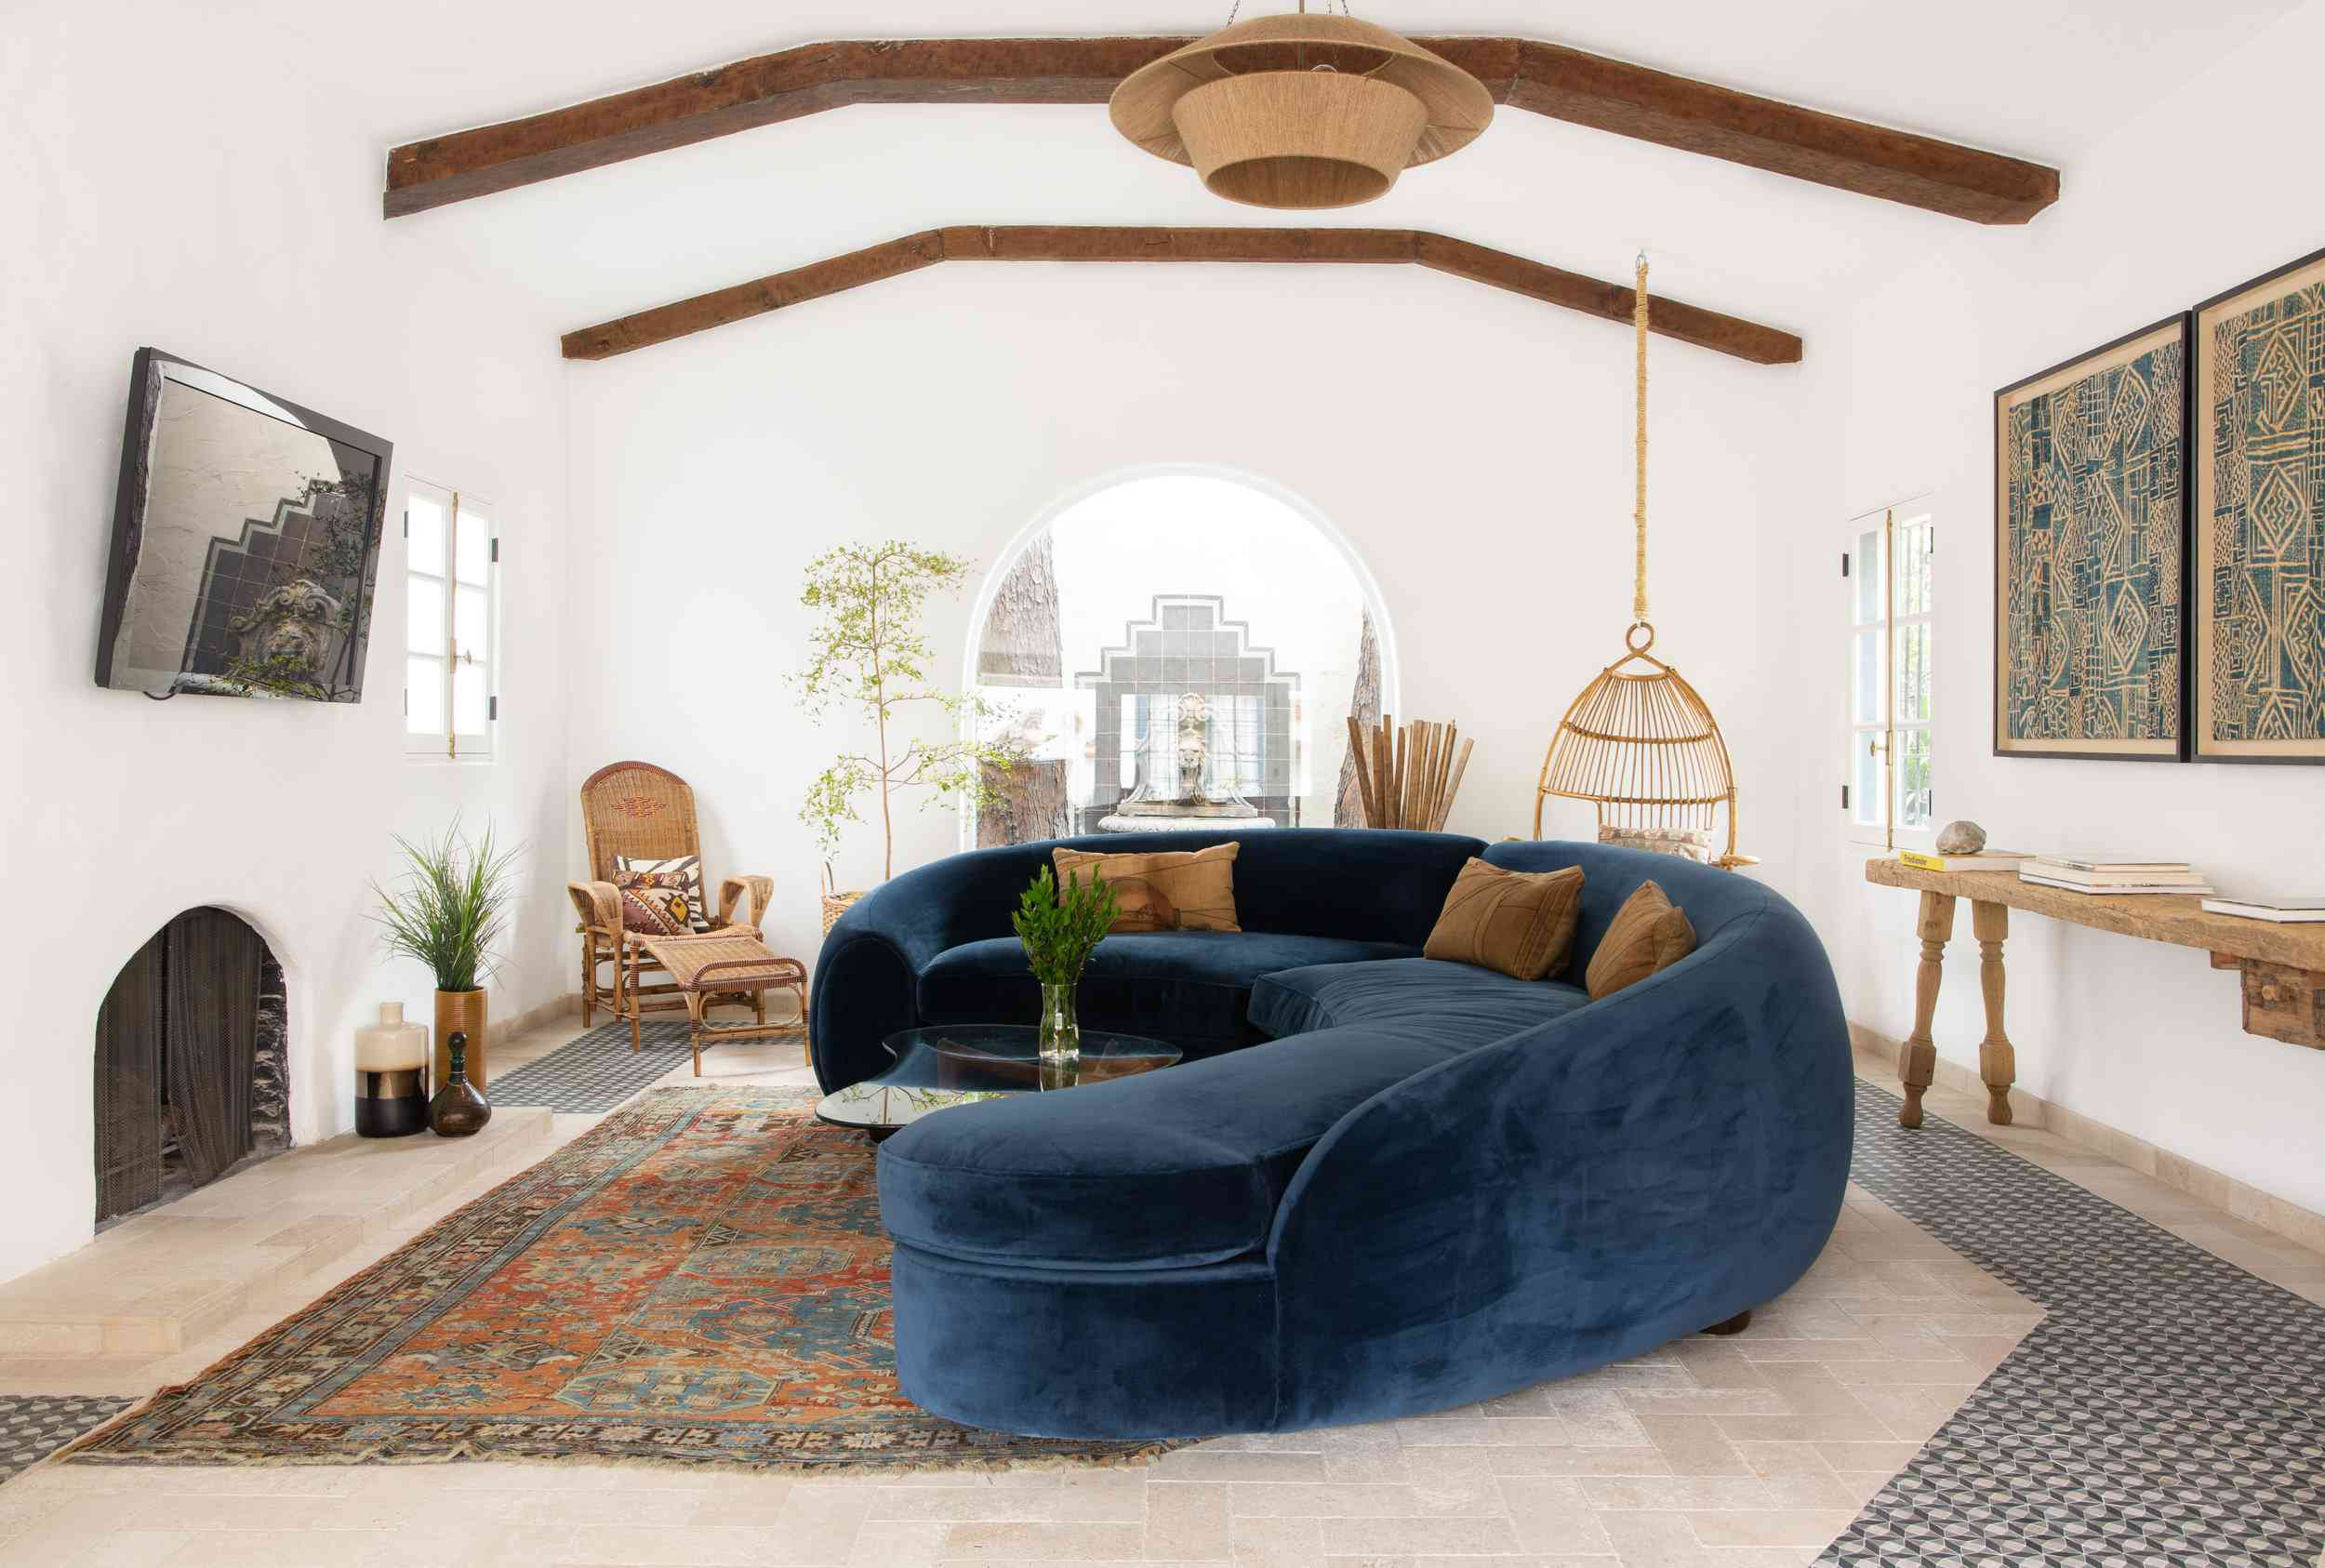 California-style living space